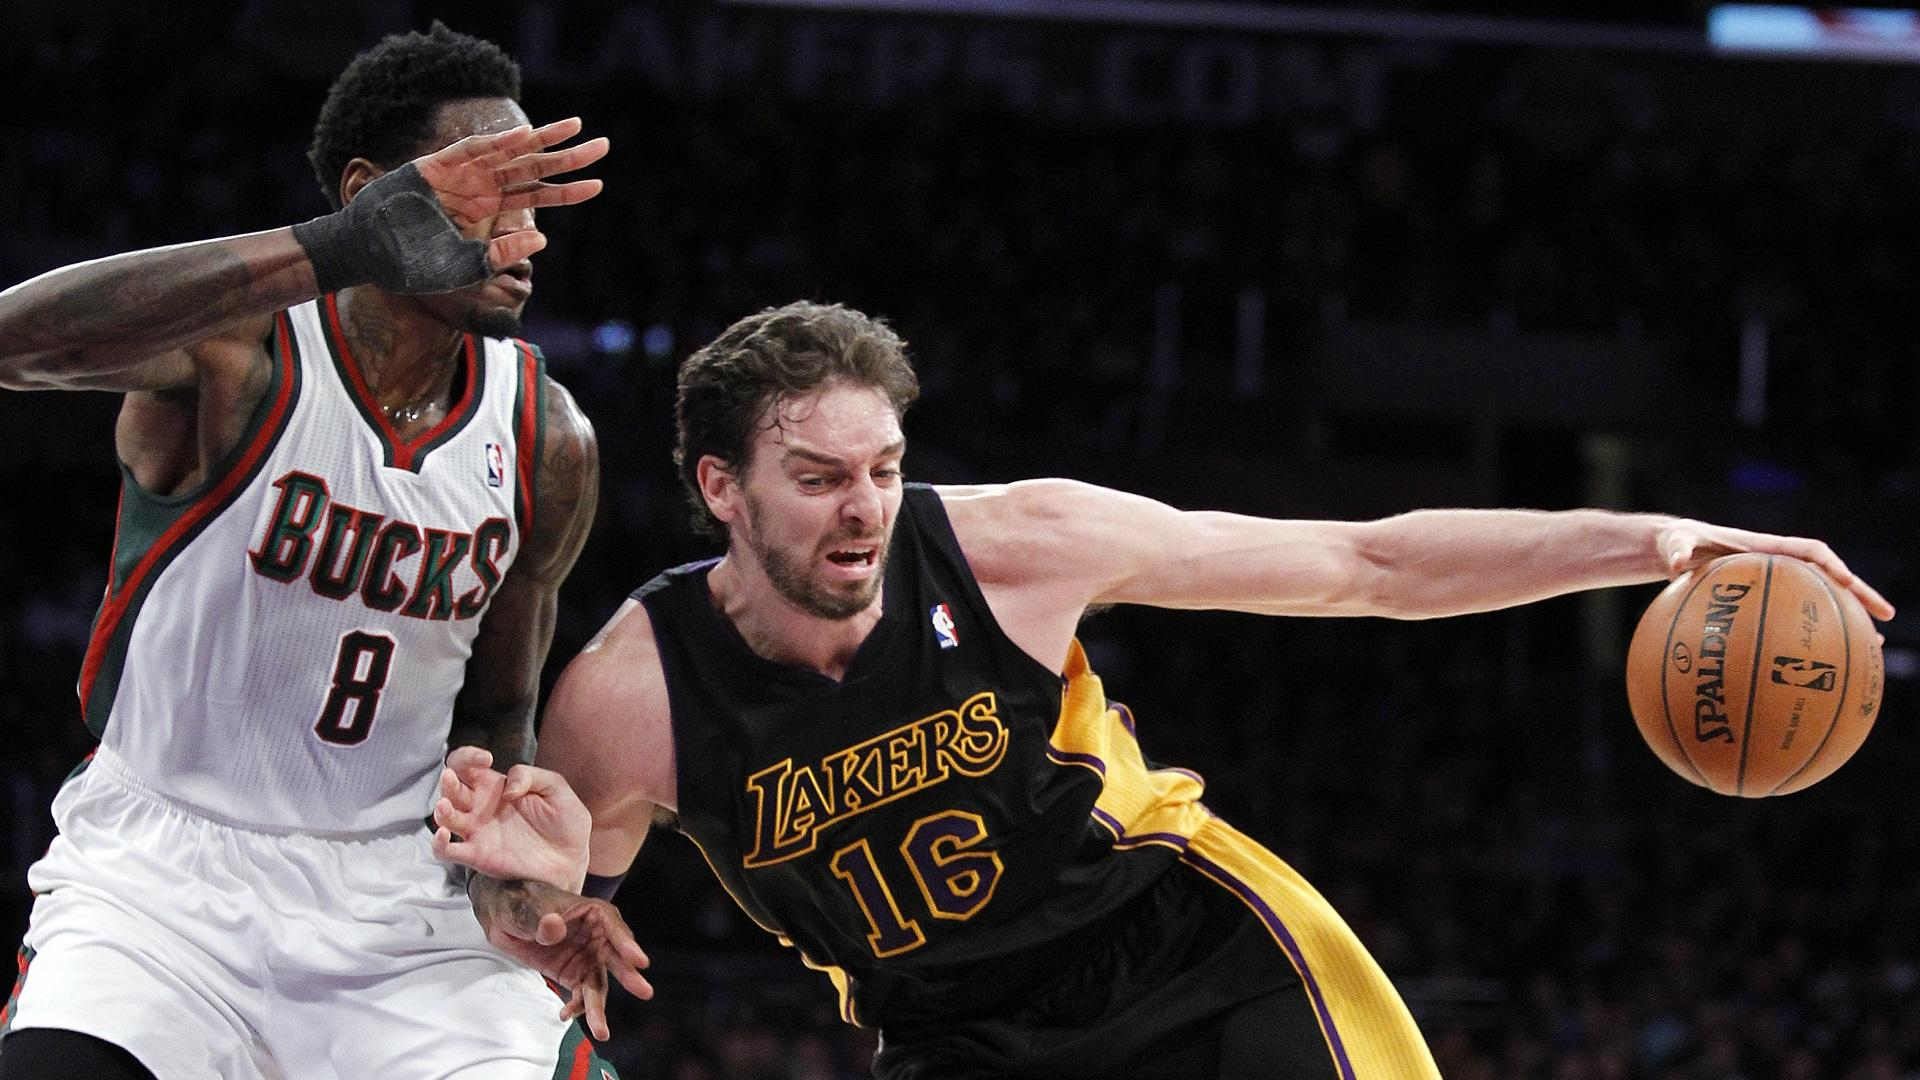 NBA free agency: Pau Gasol, Bulls reportedly close on deal